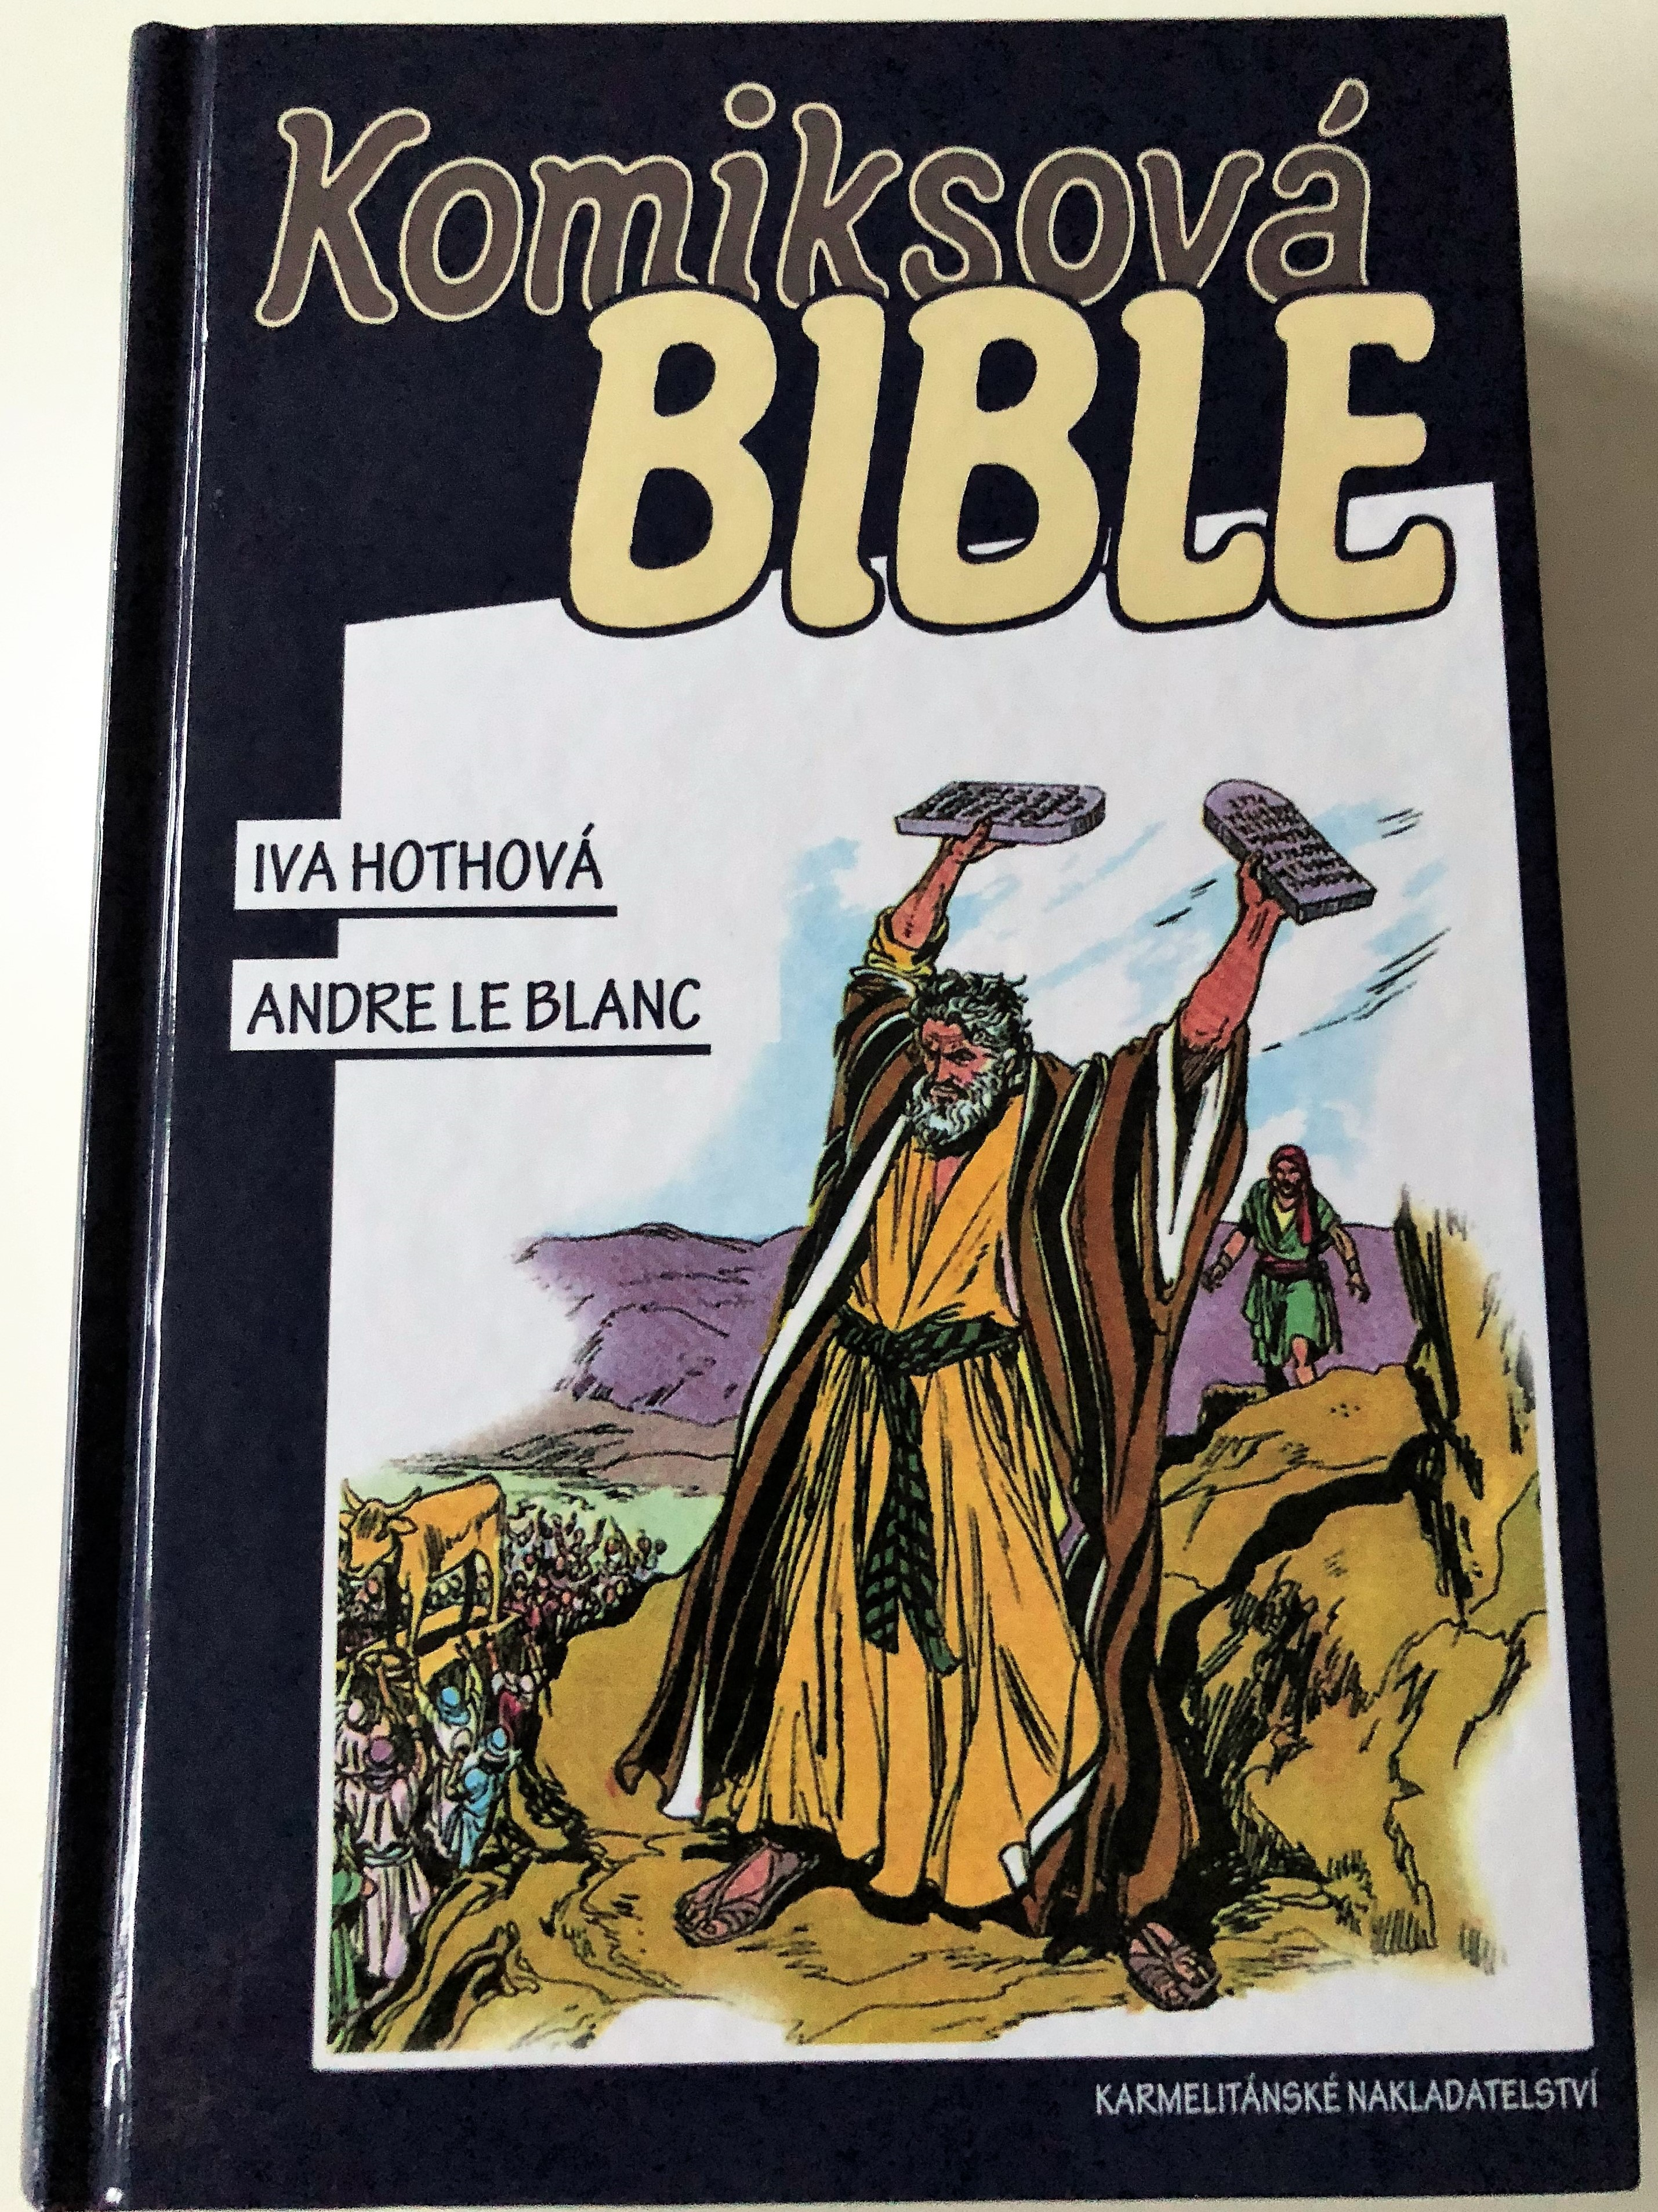 komiksov-bible-czech-edition-of-the-picture-bible-from-david-c.-cook-publishing-czech-language-bible-comic-for-children-and-teenagers-hardcover-2014-1-.jpg